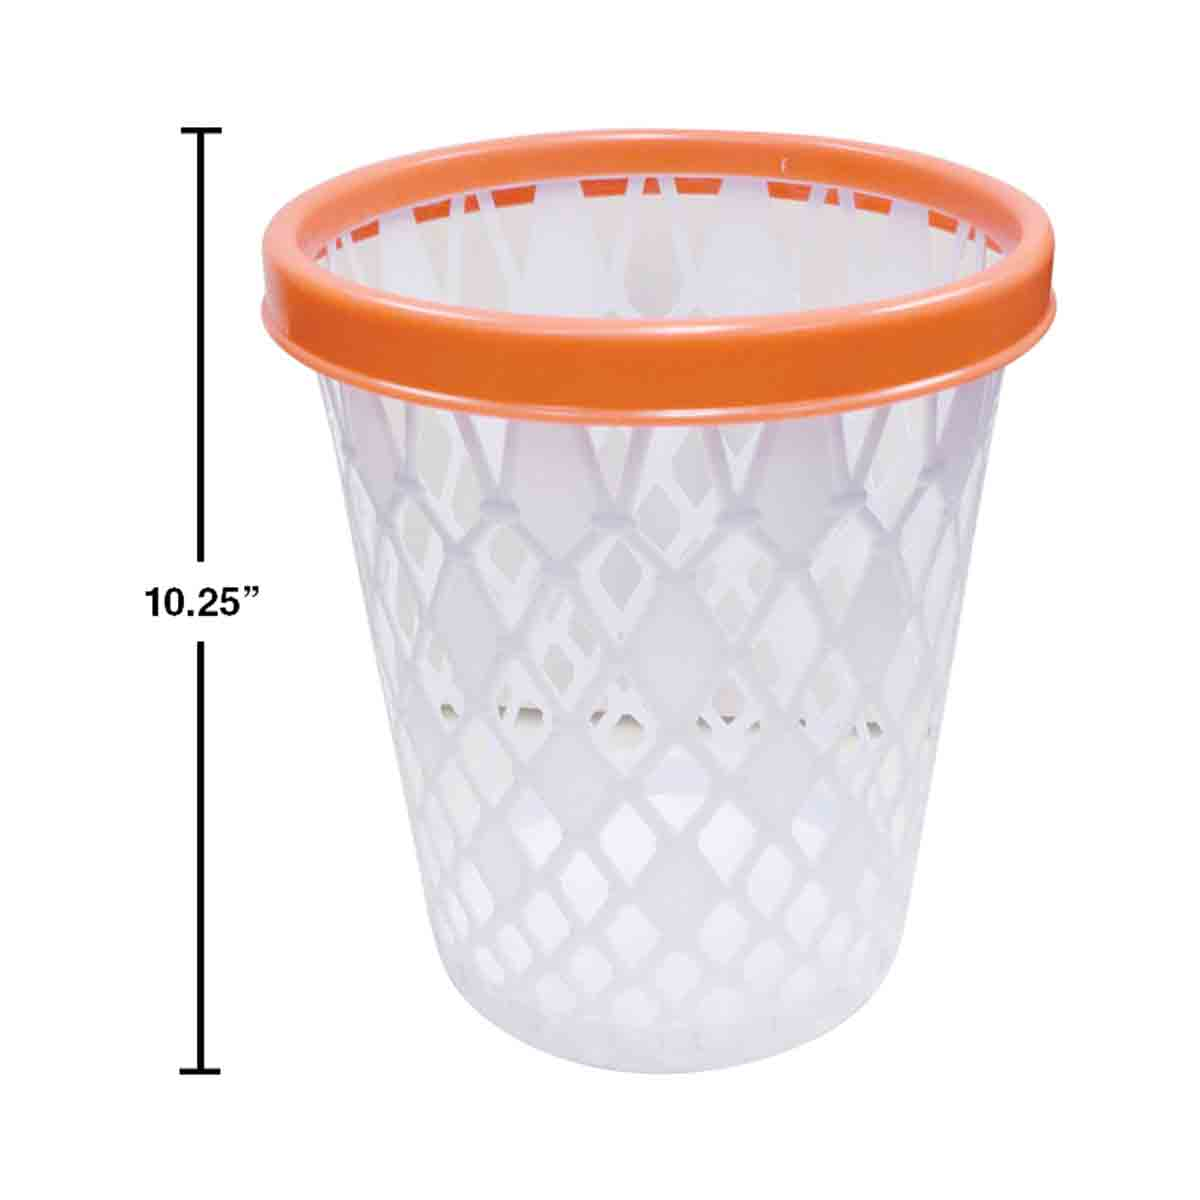 Basketball Net Wastebasket